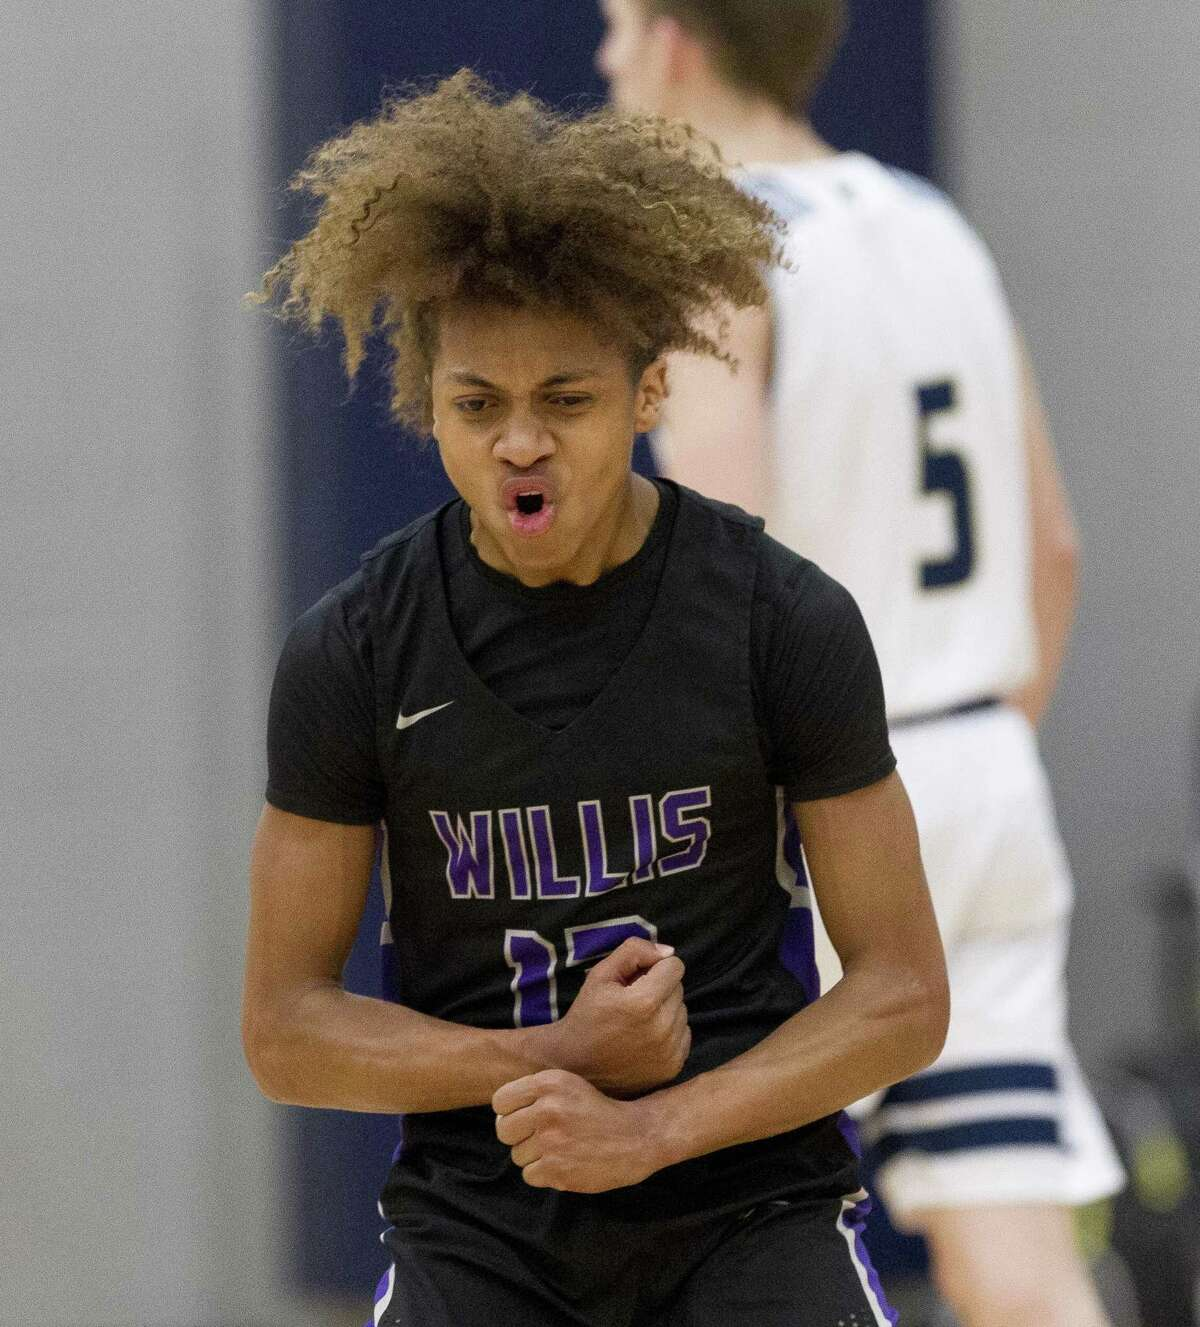 Willis point guard D'Shawn Woods (13) reacts after making a three-pointer to end the second quarter of a District 20-5A high school basketball game, Tuesday, Jan 29, 2019, in Montgomery.